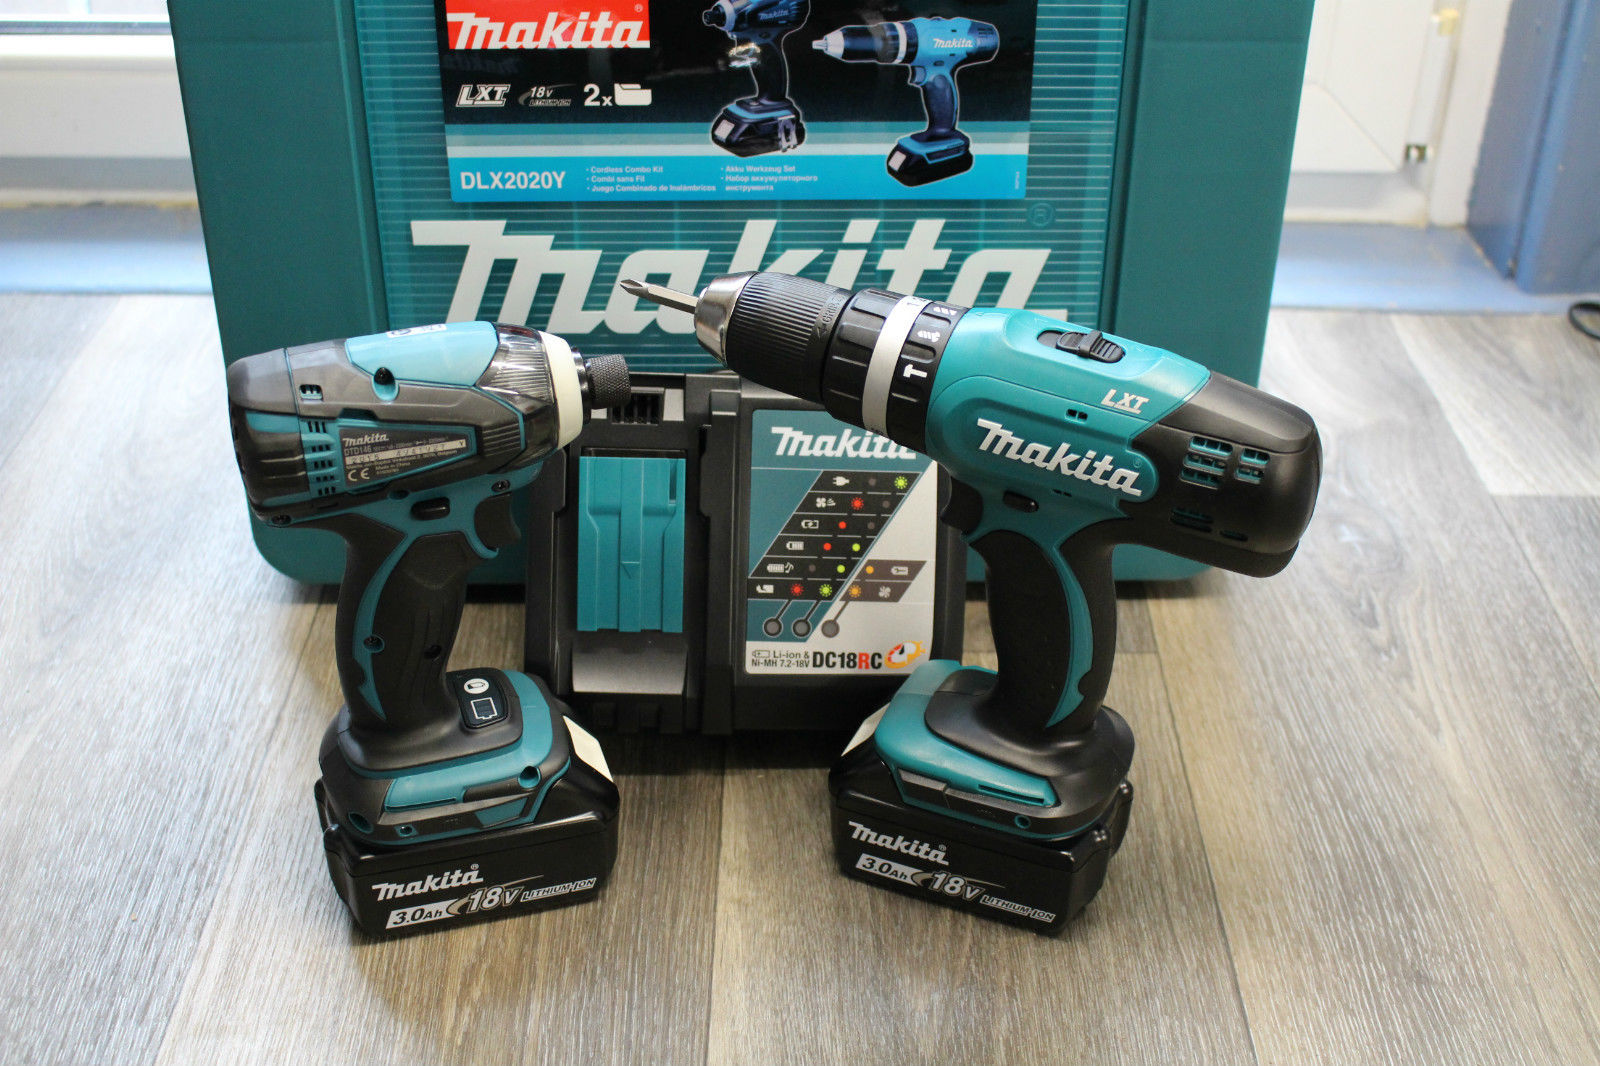 Makita Accuschroefboormachine Df457dwex2 18v 70 Delige Accessoireset Accuboormachineset Aanbieding | Dell Outlet Coupons